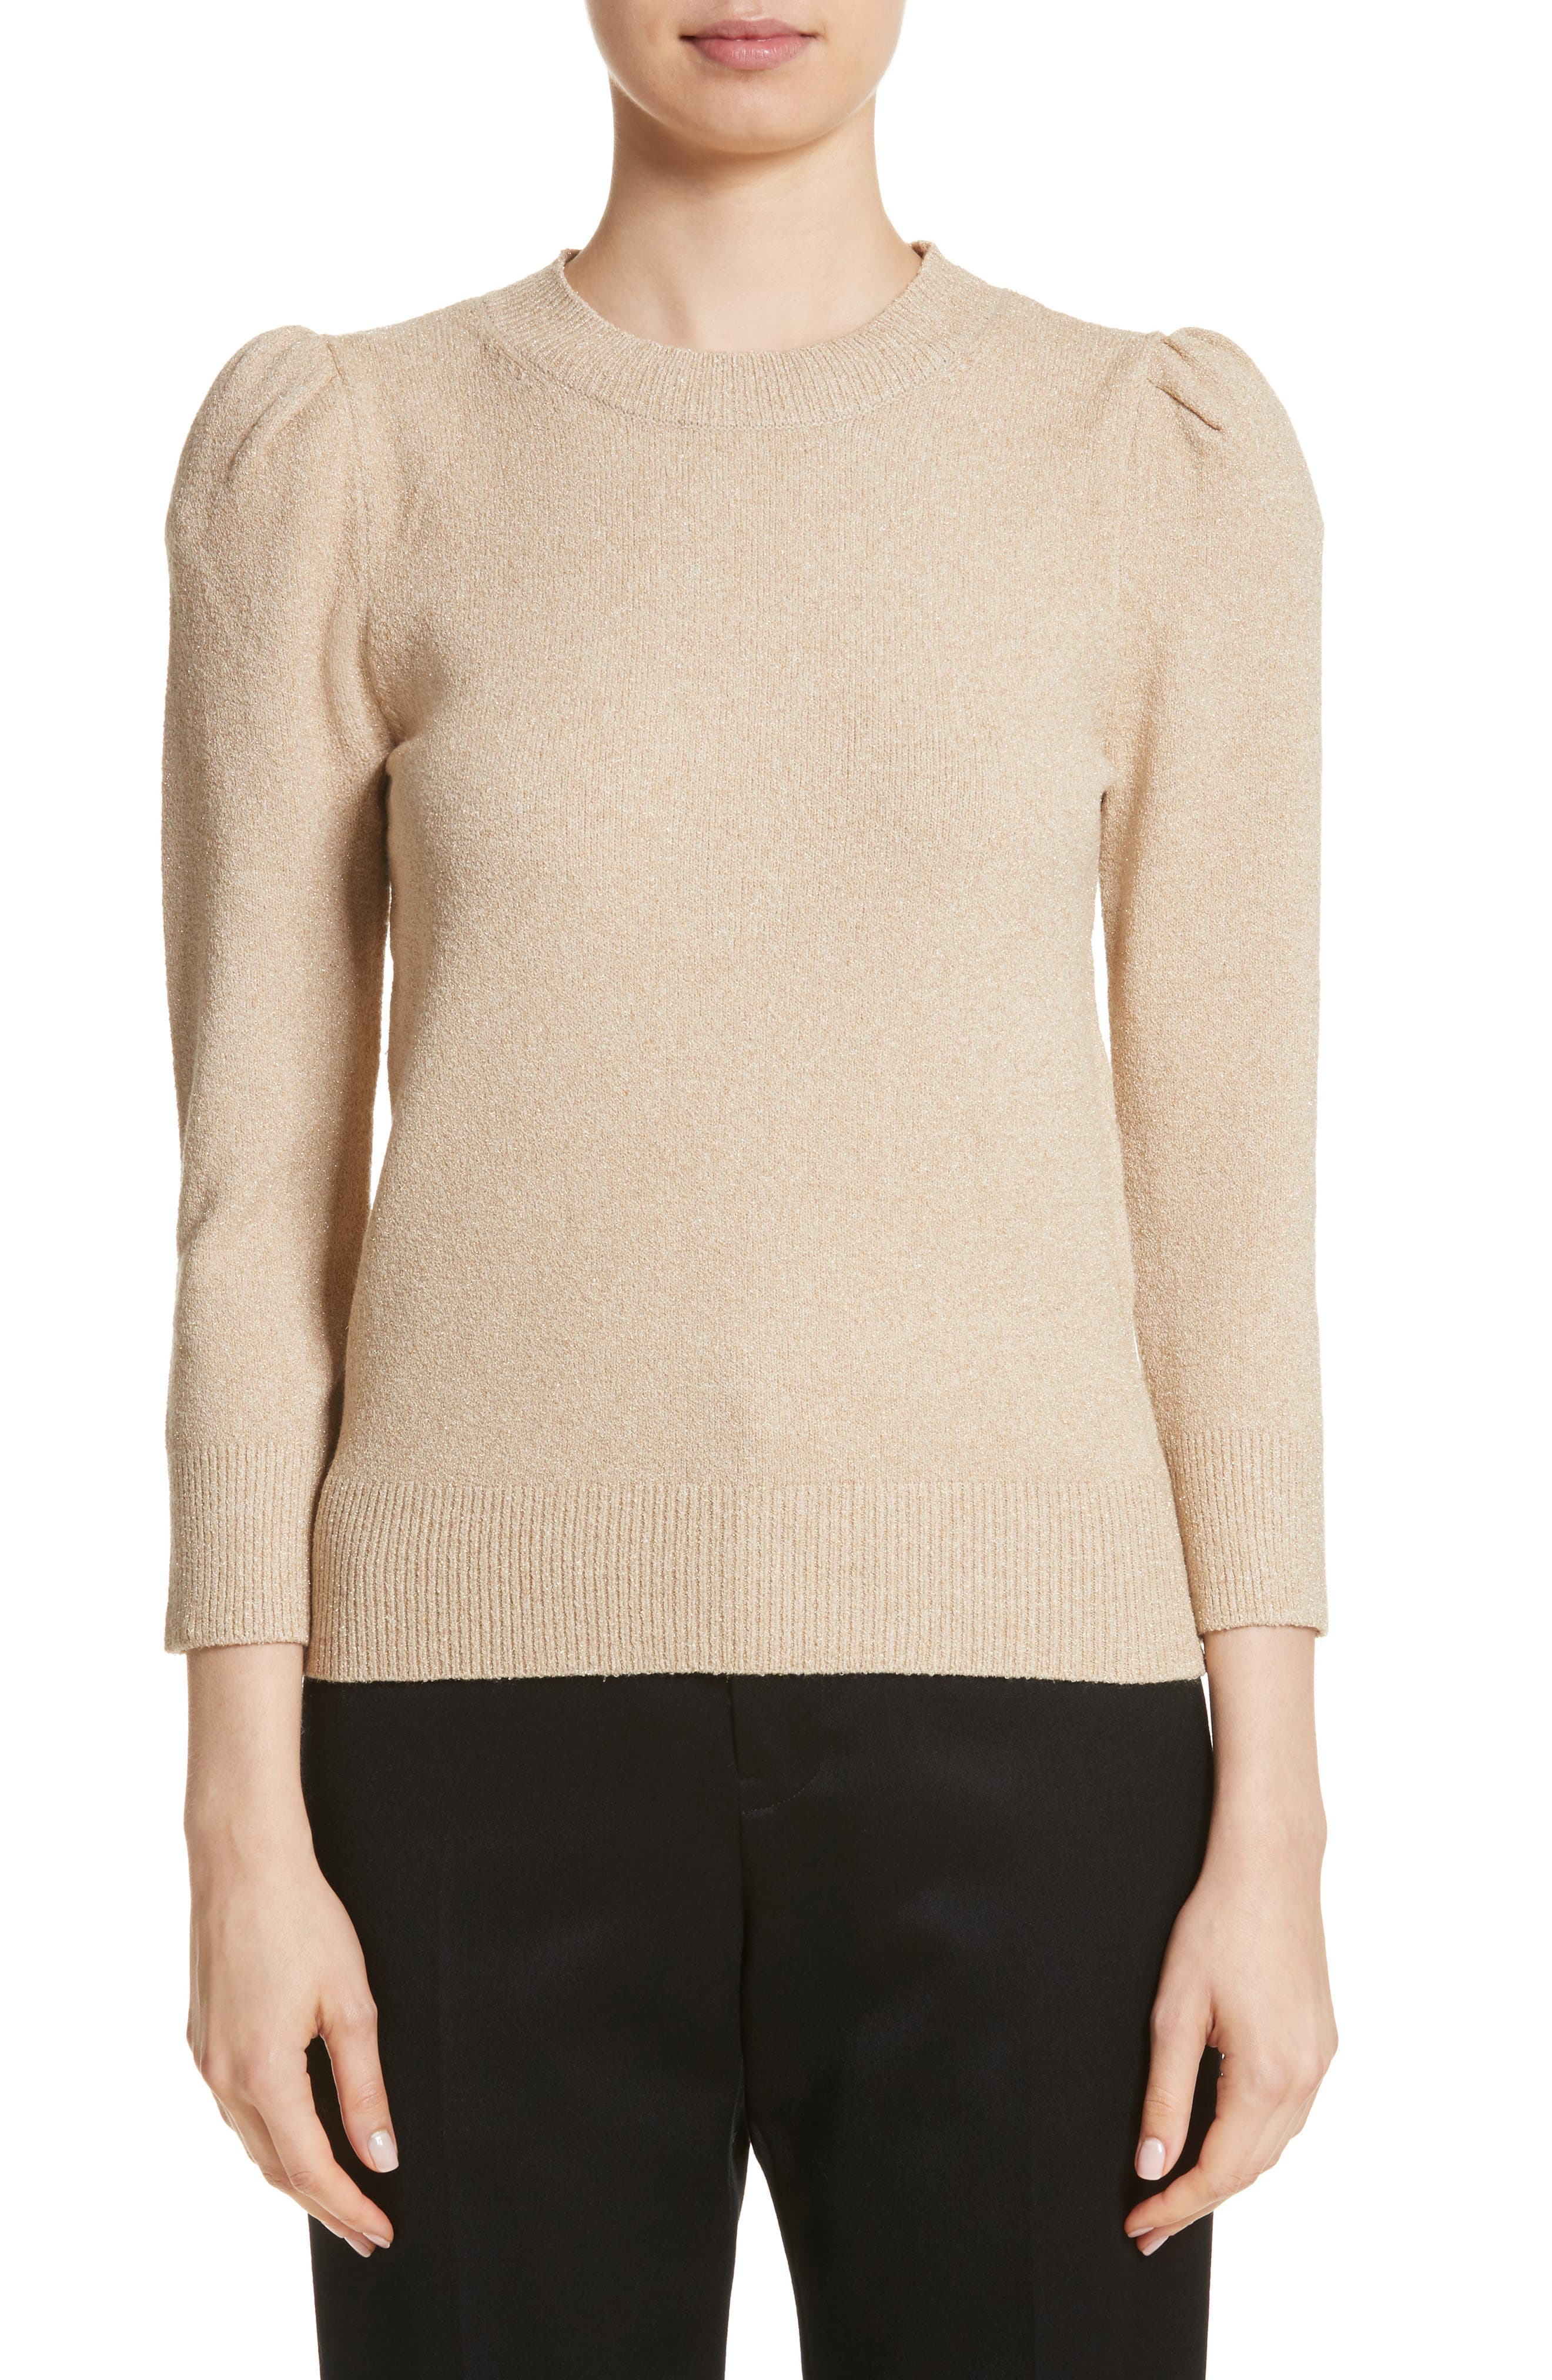 Women's Co Brown Sweaters: Sale | Nordstrom